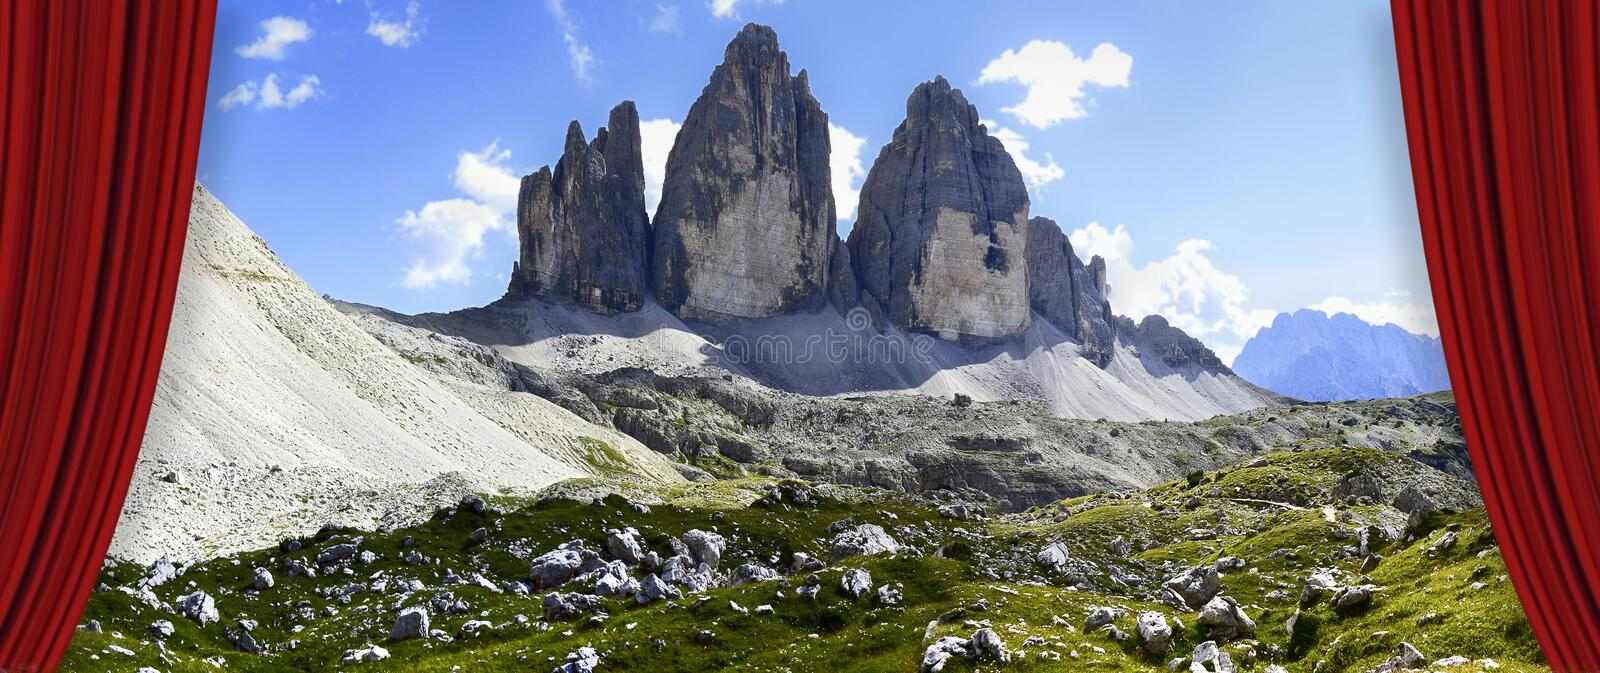 Open theater red curtains against the Tre Cime di Lavaredo panoramic view in summer - Dolomitics landscapes Italy. View of San Nicolò refuge in Contrin valley stock photo